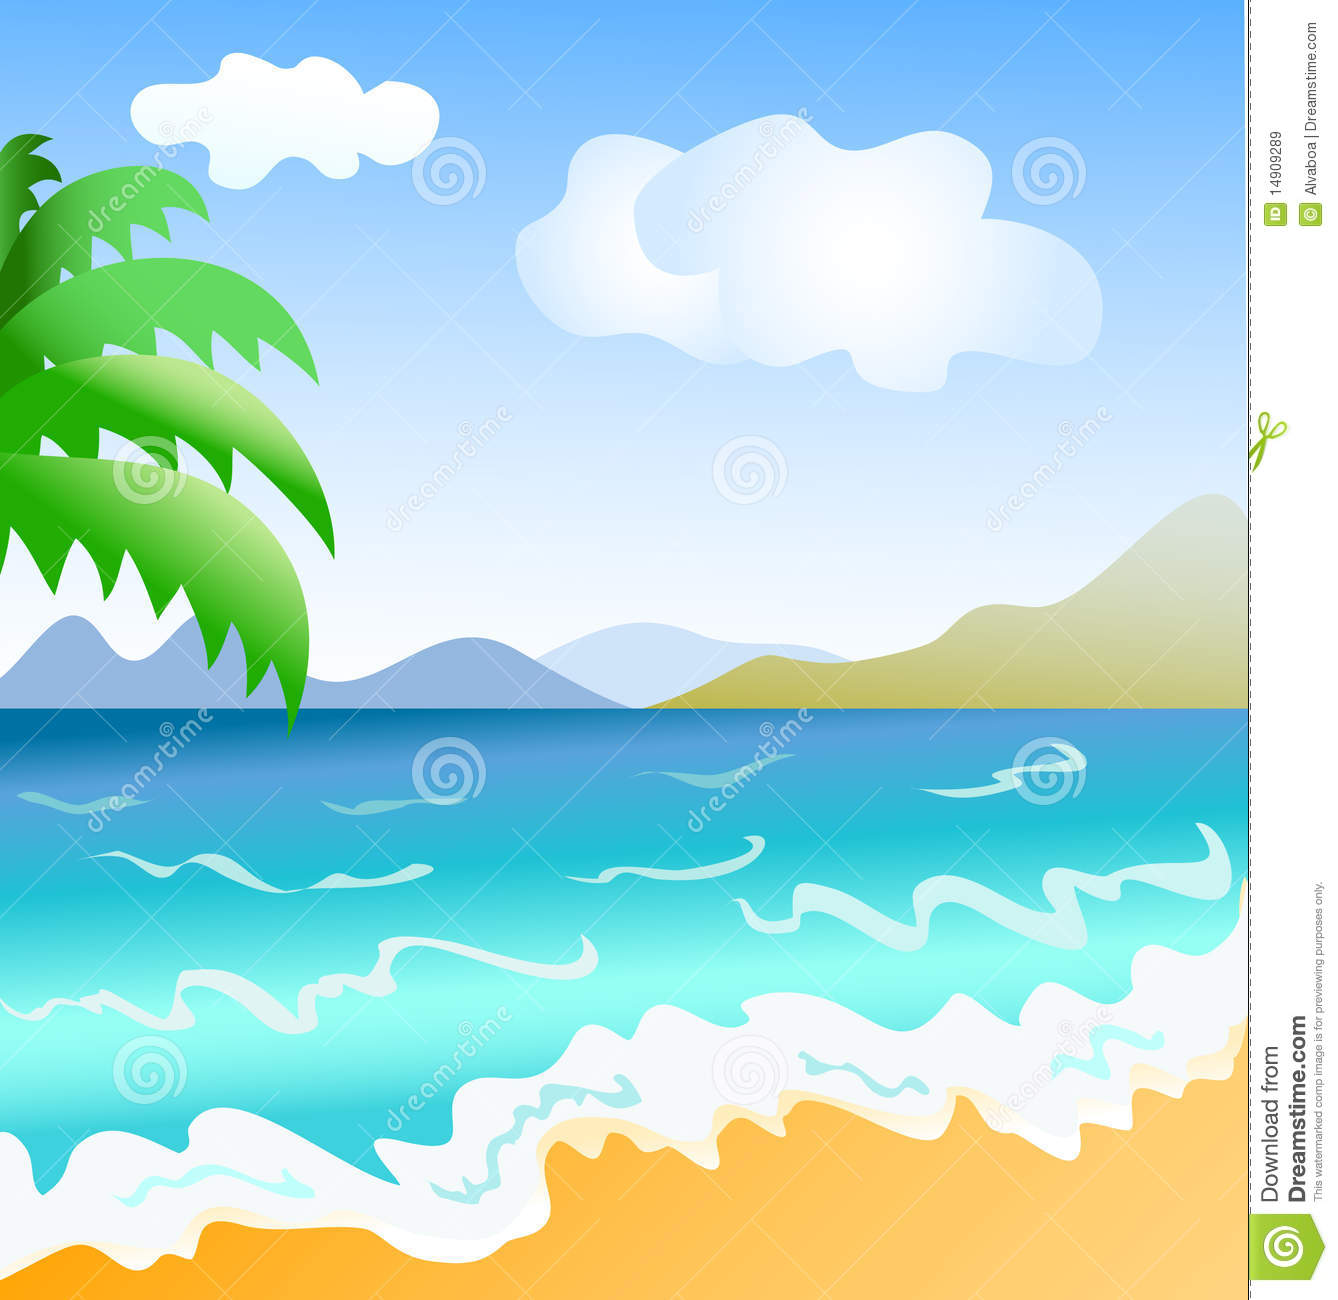 Seaside clipart seashore #3